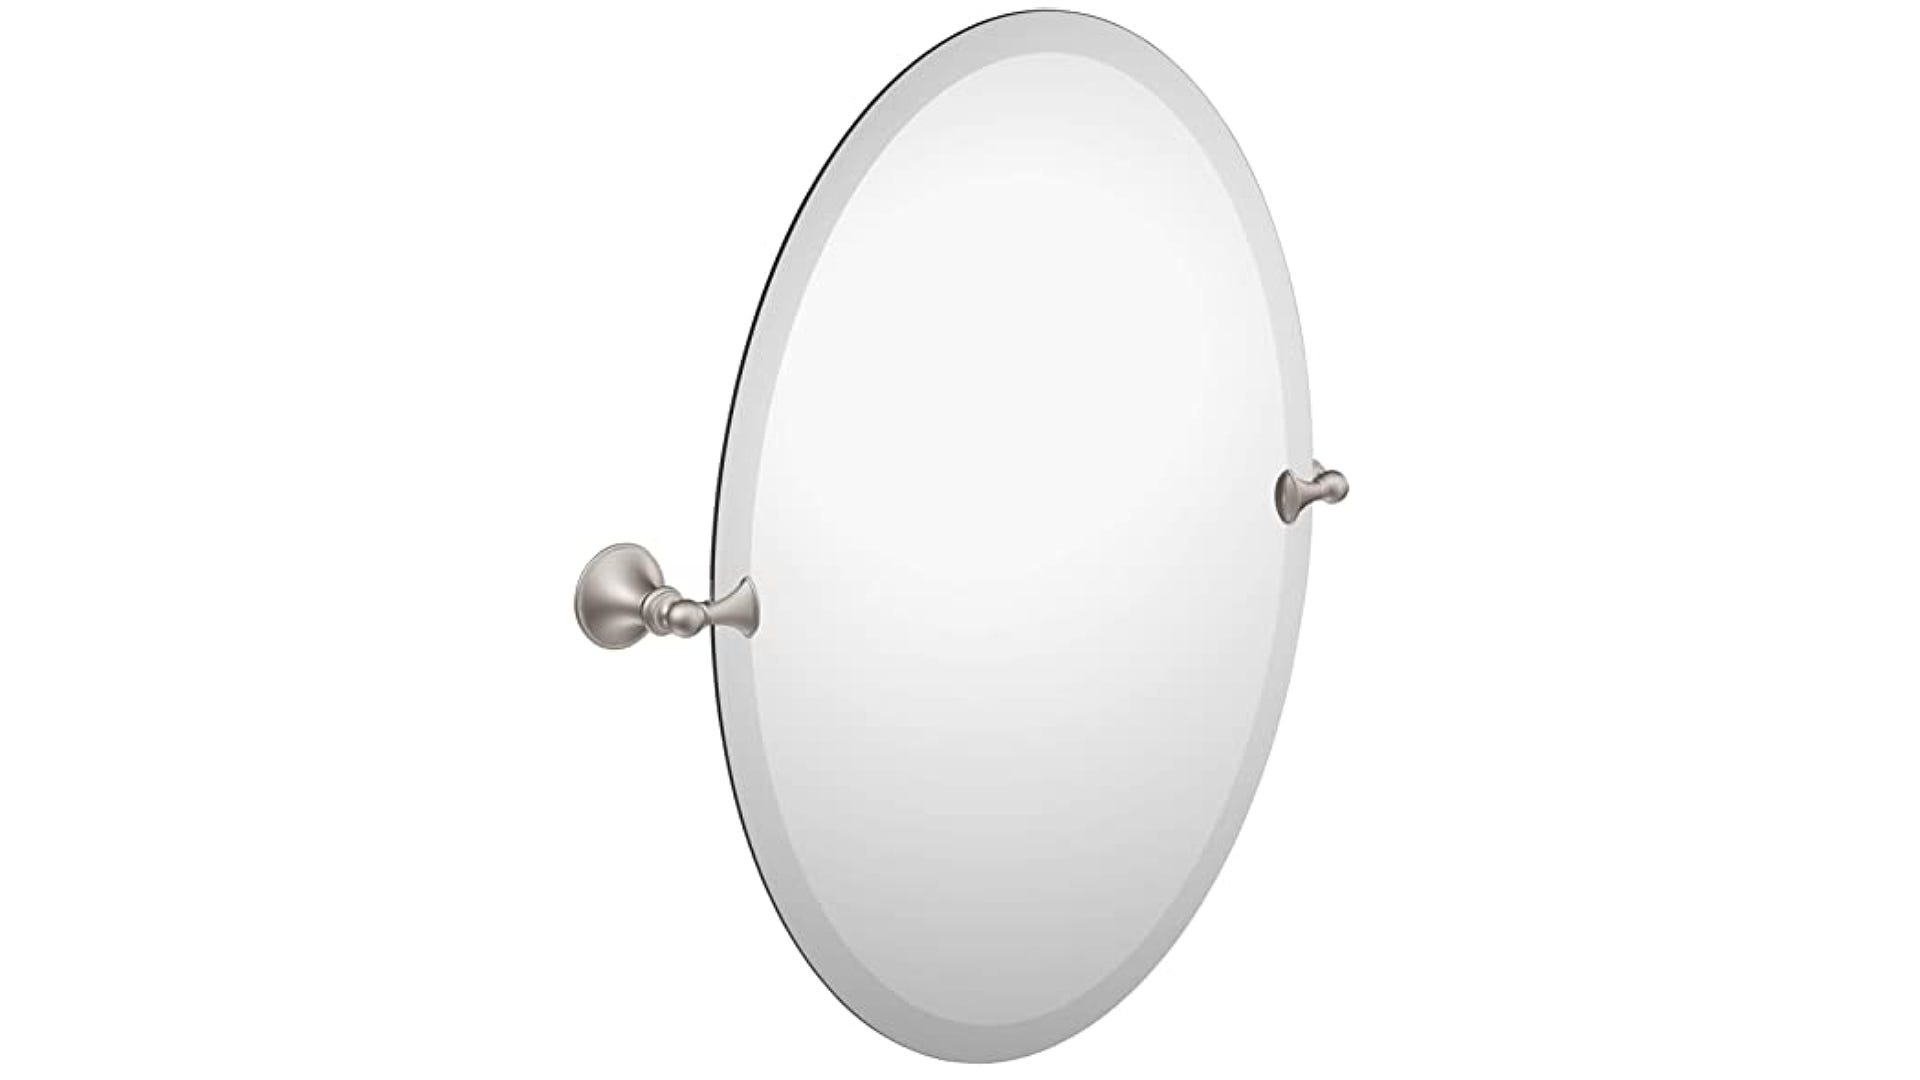 Pivoting oval mirror with beveled edge and no frame.